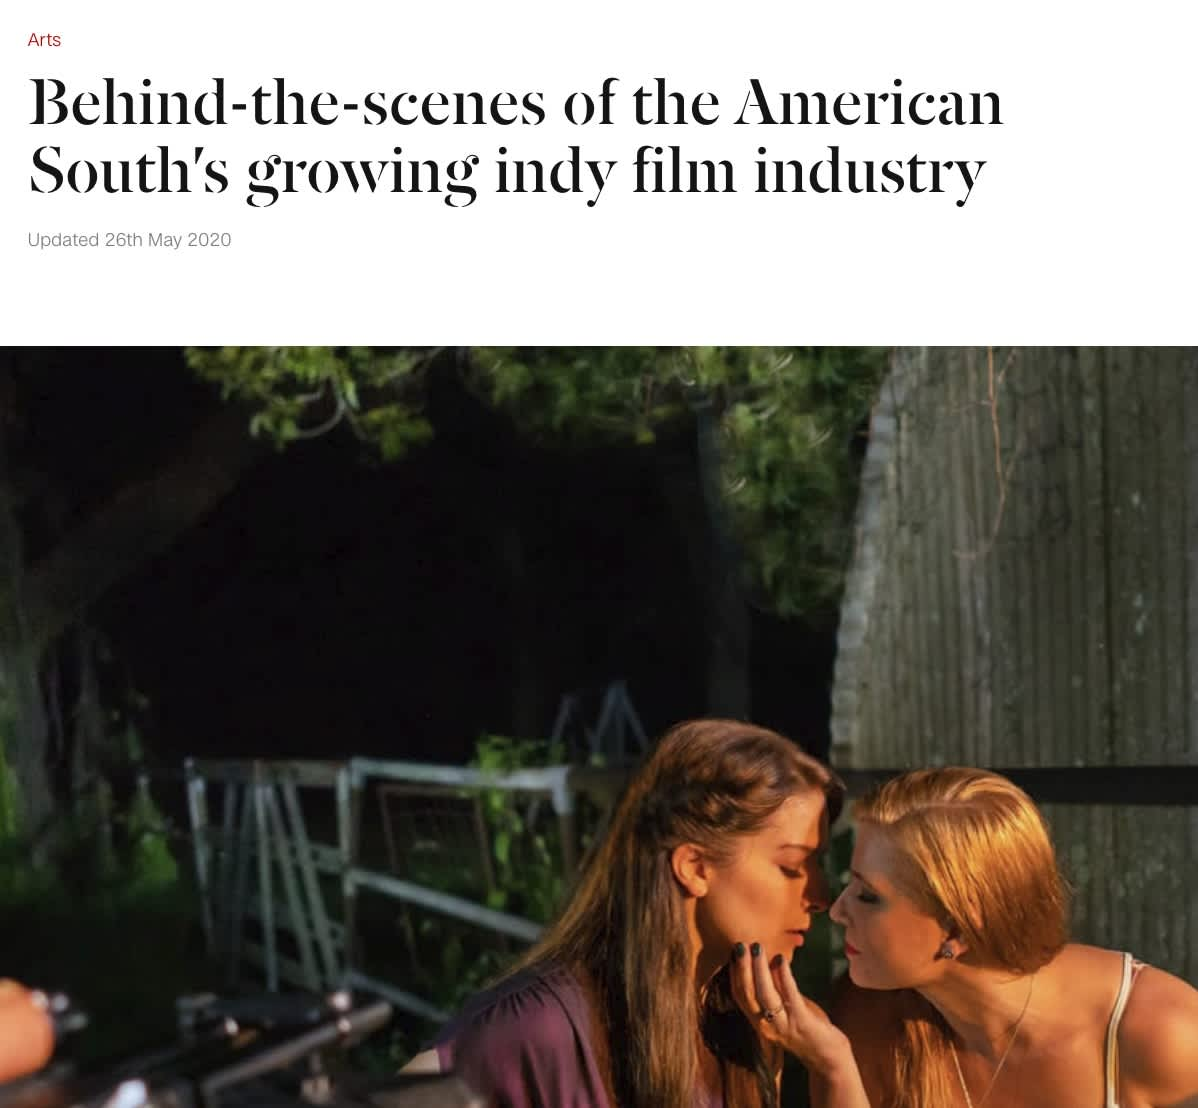 Behind-the-scenes of the American South's growing indy film industry